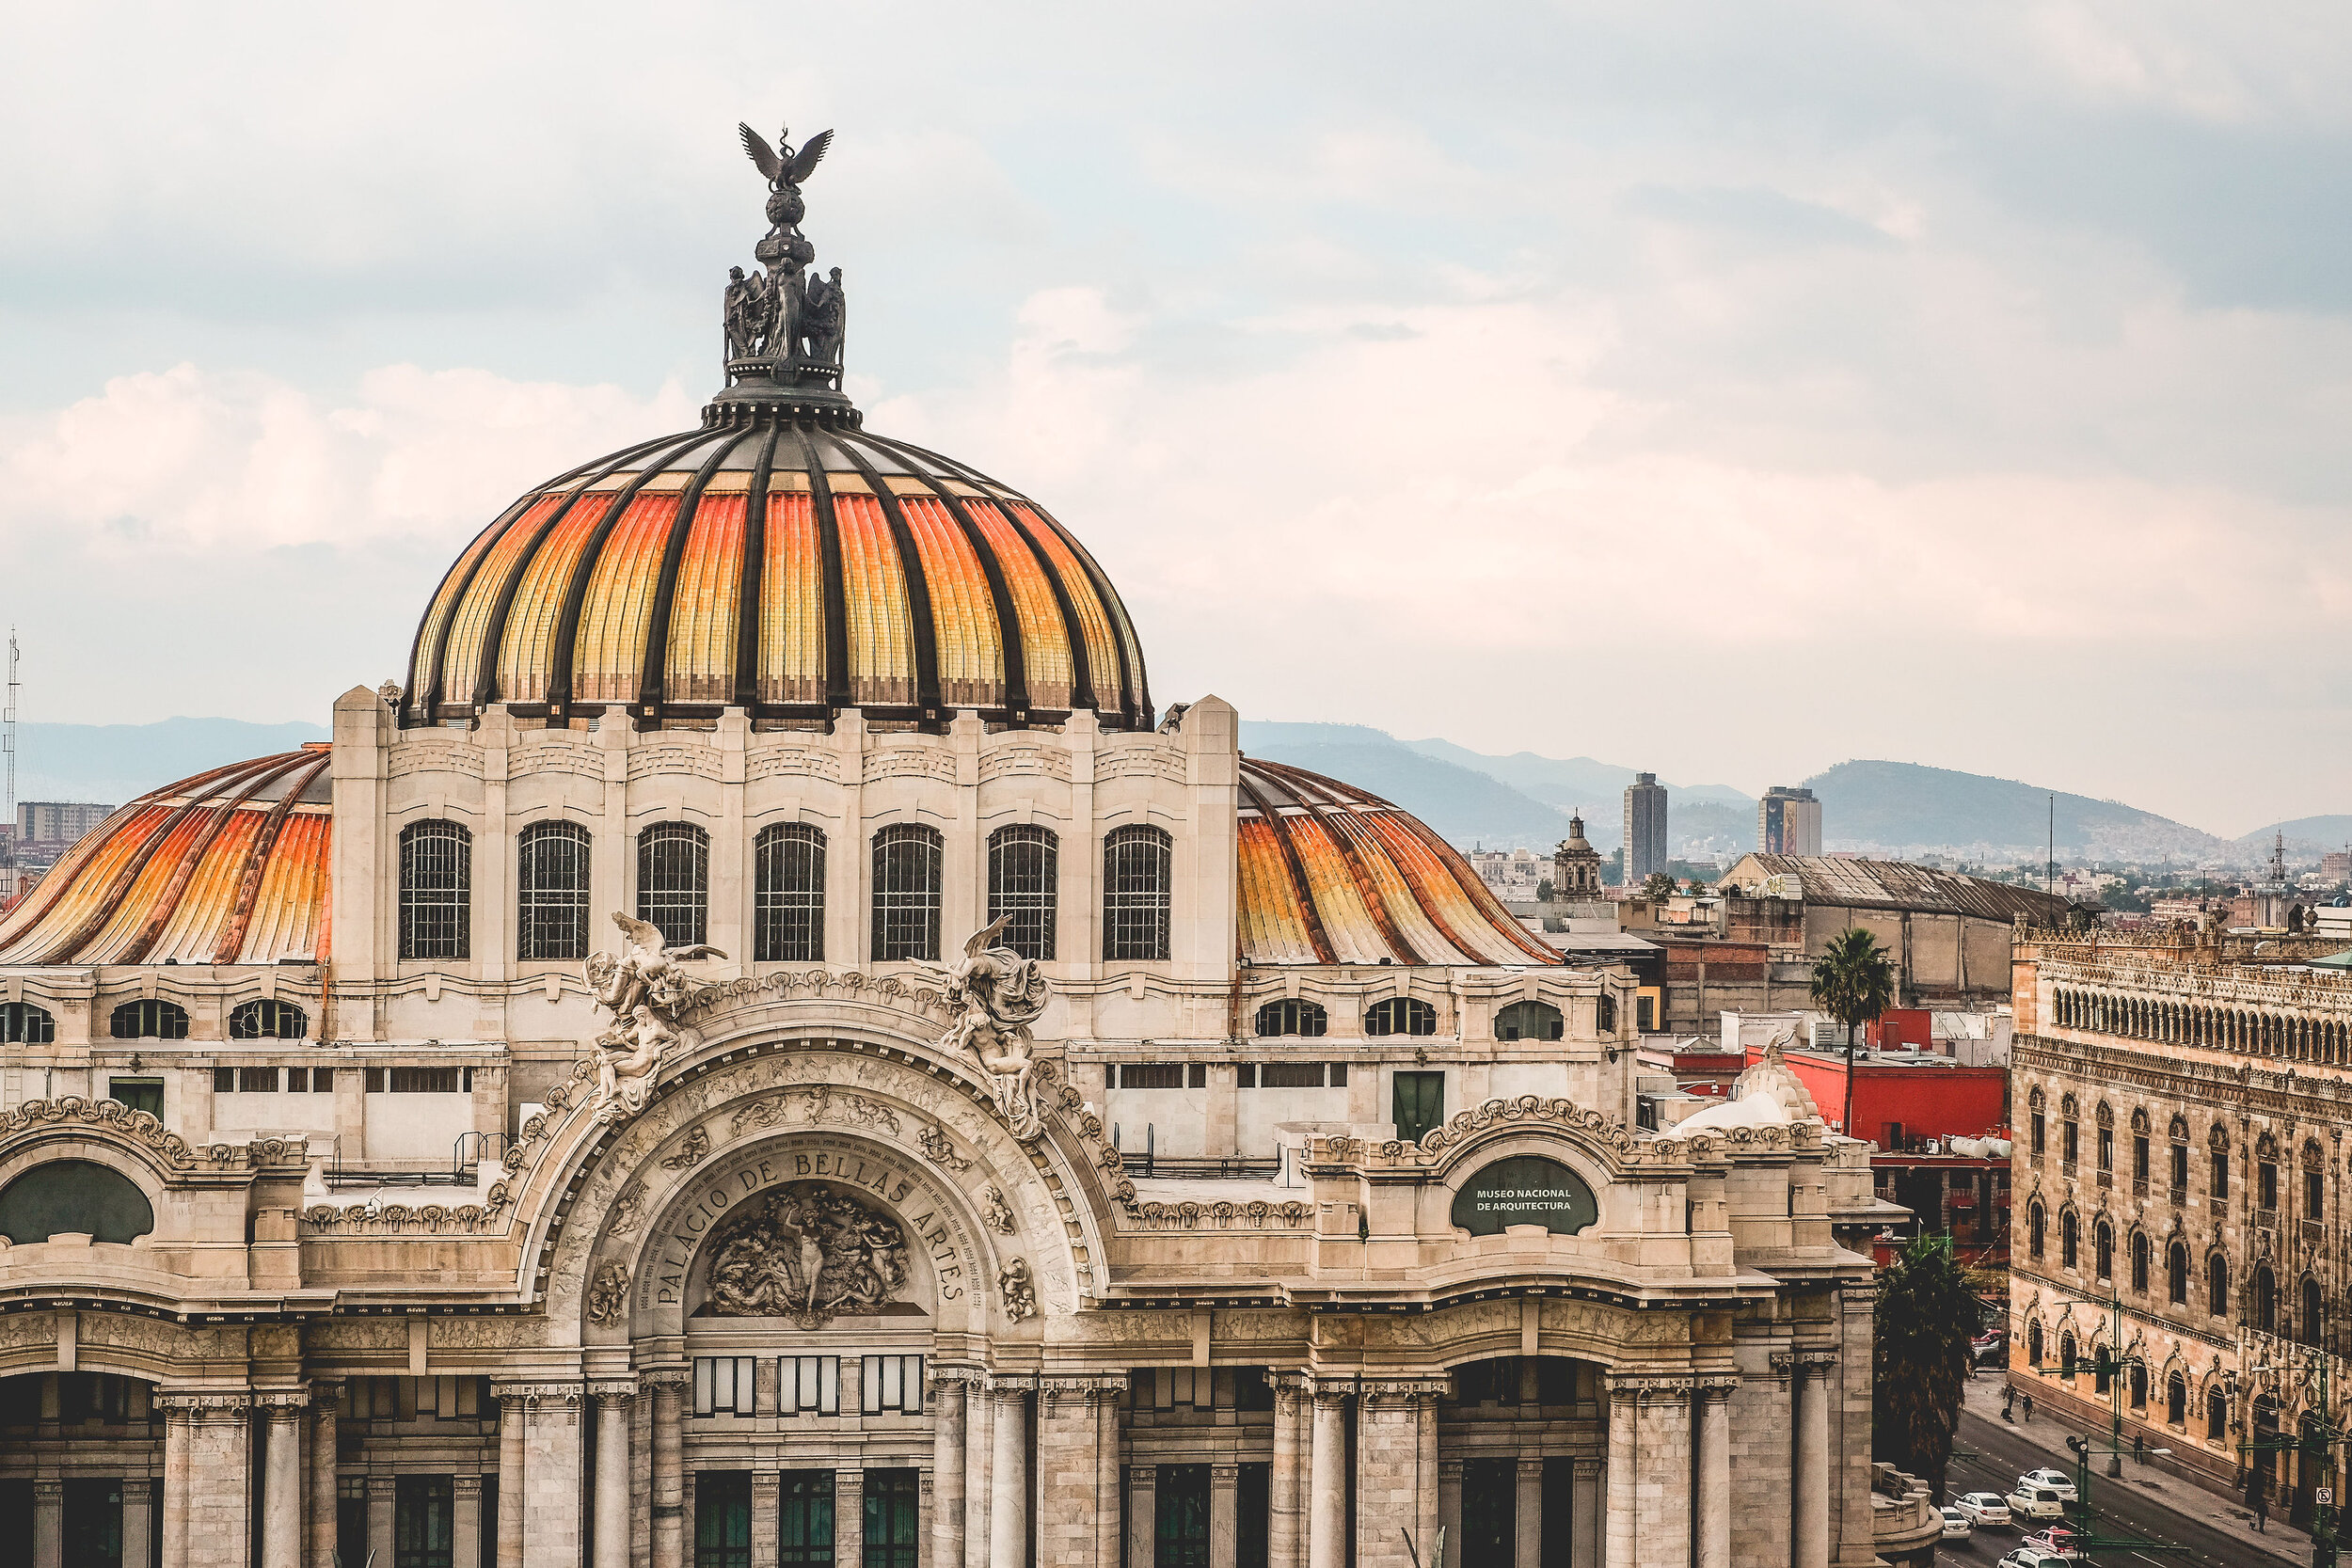 Palacio Bellas Artes, Mexico City